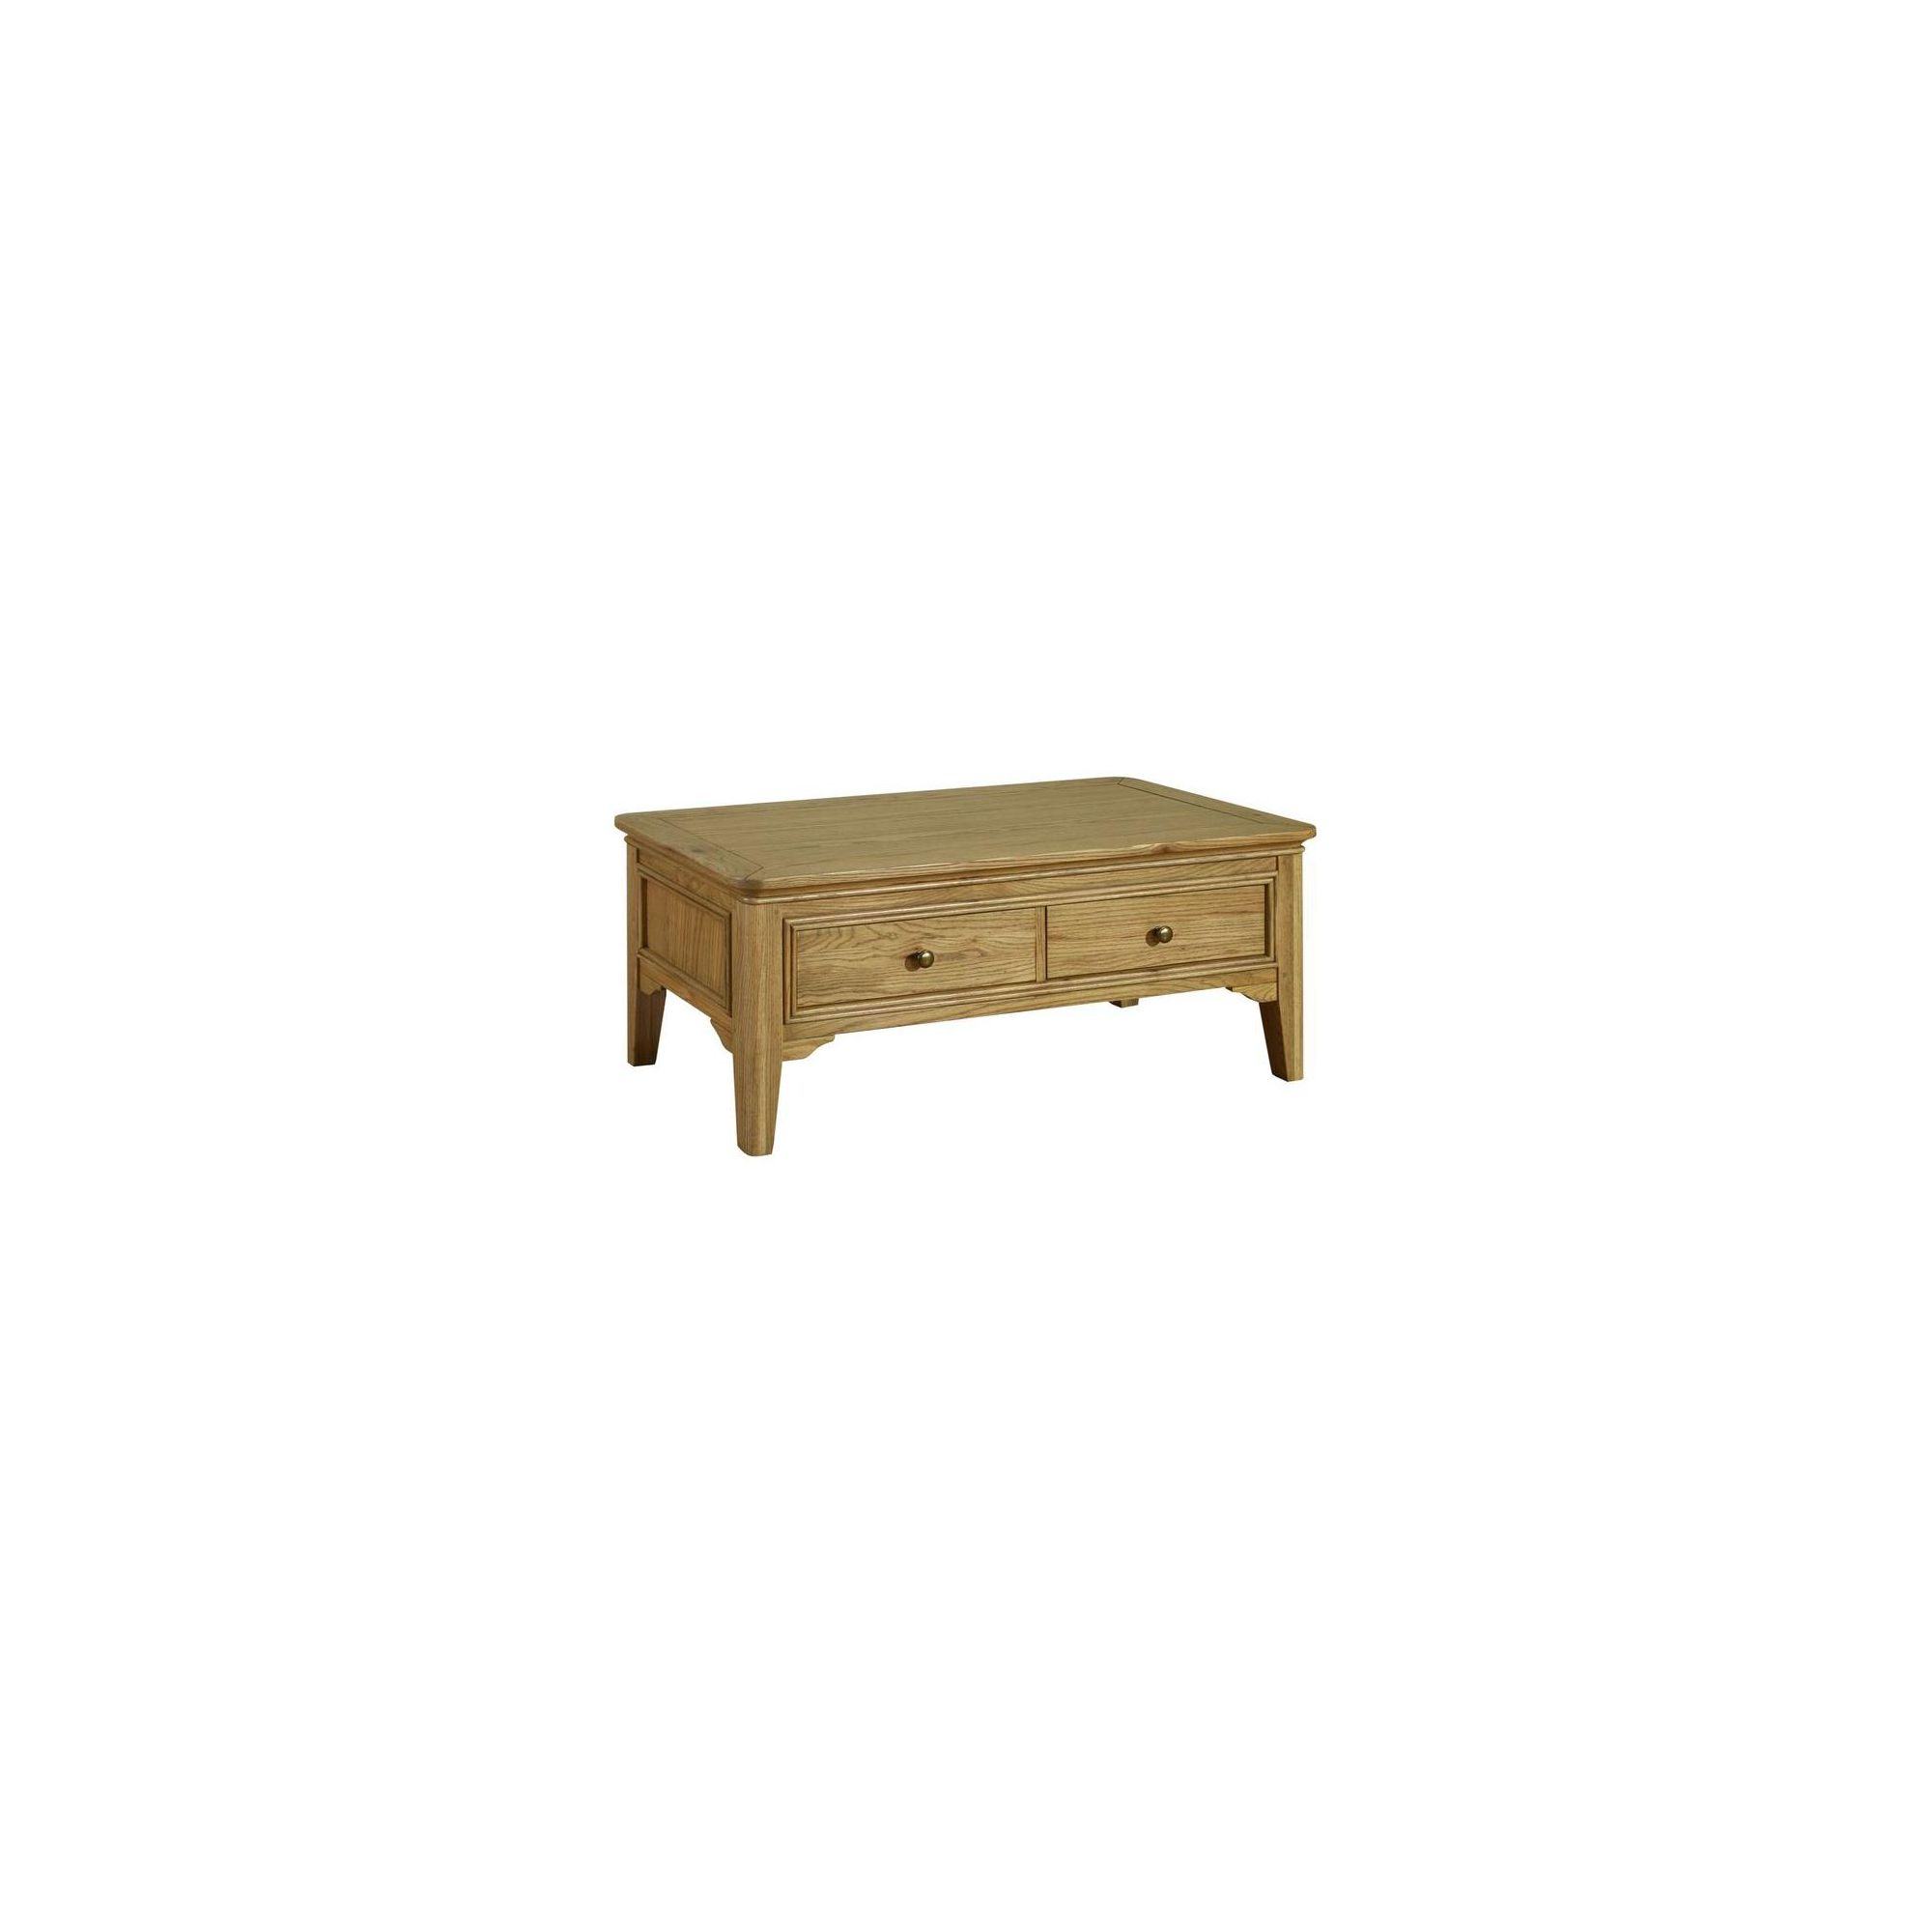 Kelburn Furniture Loire Coffee Table in Light Oak Stain and Satin Lacquer at Tescos Direct